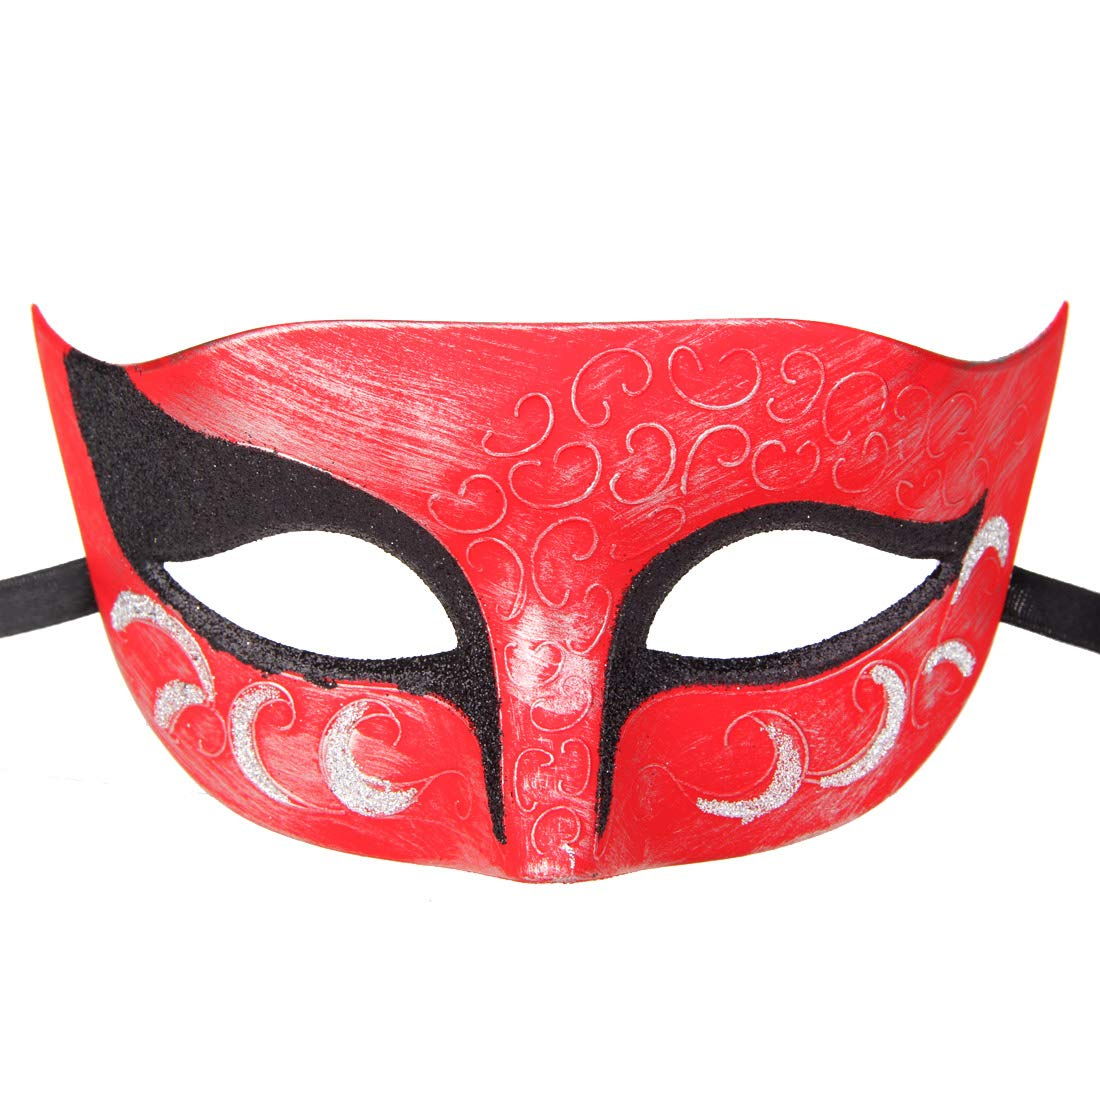 Couples Pair Half Venetian Masquerade Ball Mask Set Party Costume Accessory (on Stick-Black&red)